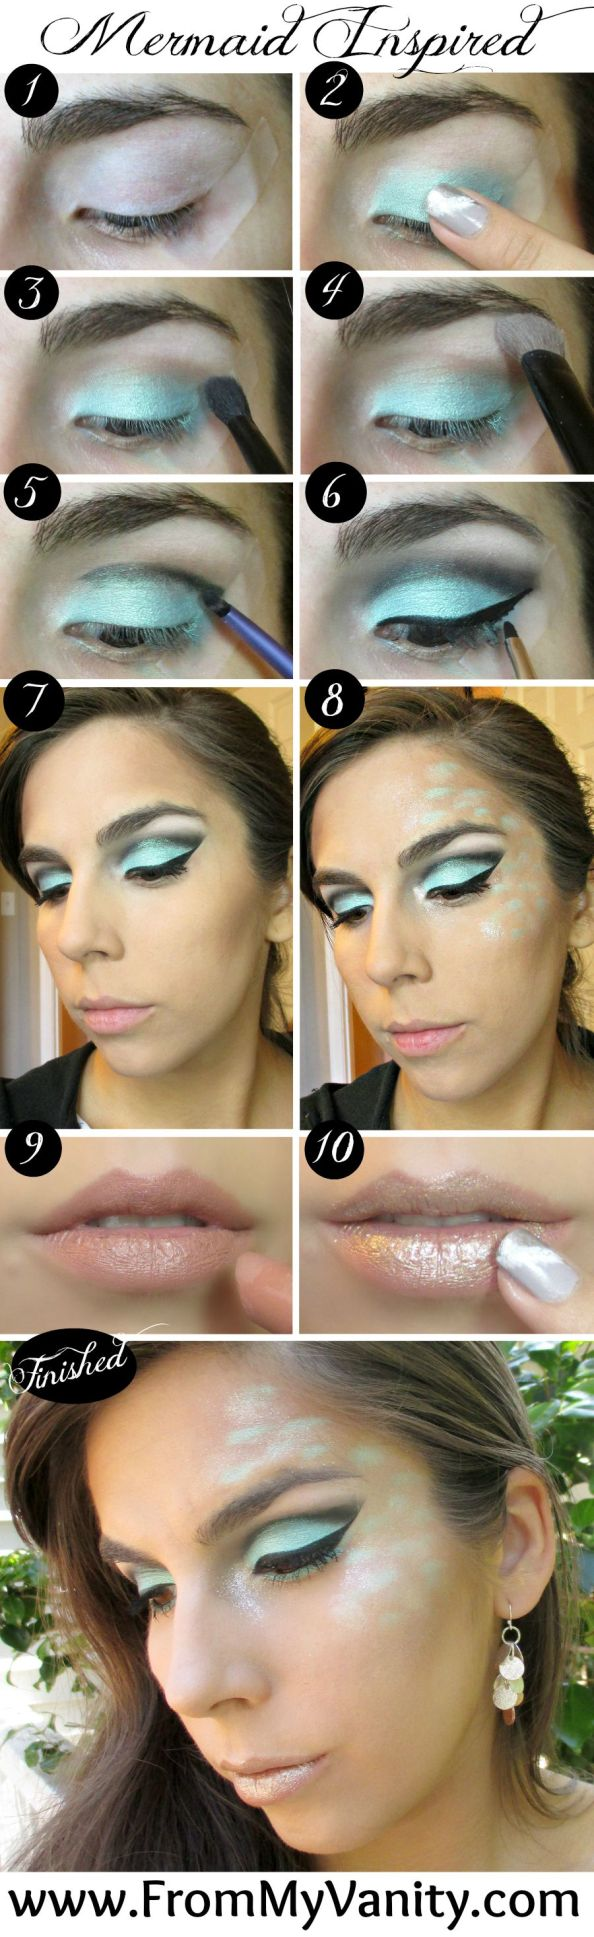 mermaid-inspired-makeup-tutorial-stepbystep